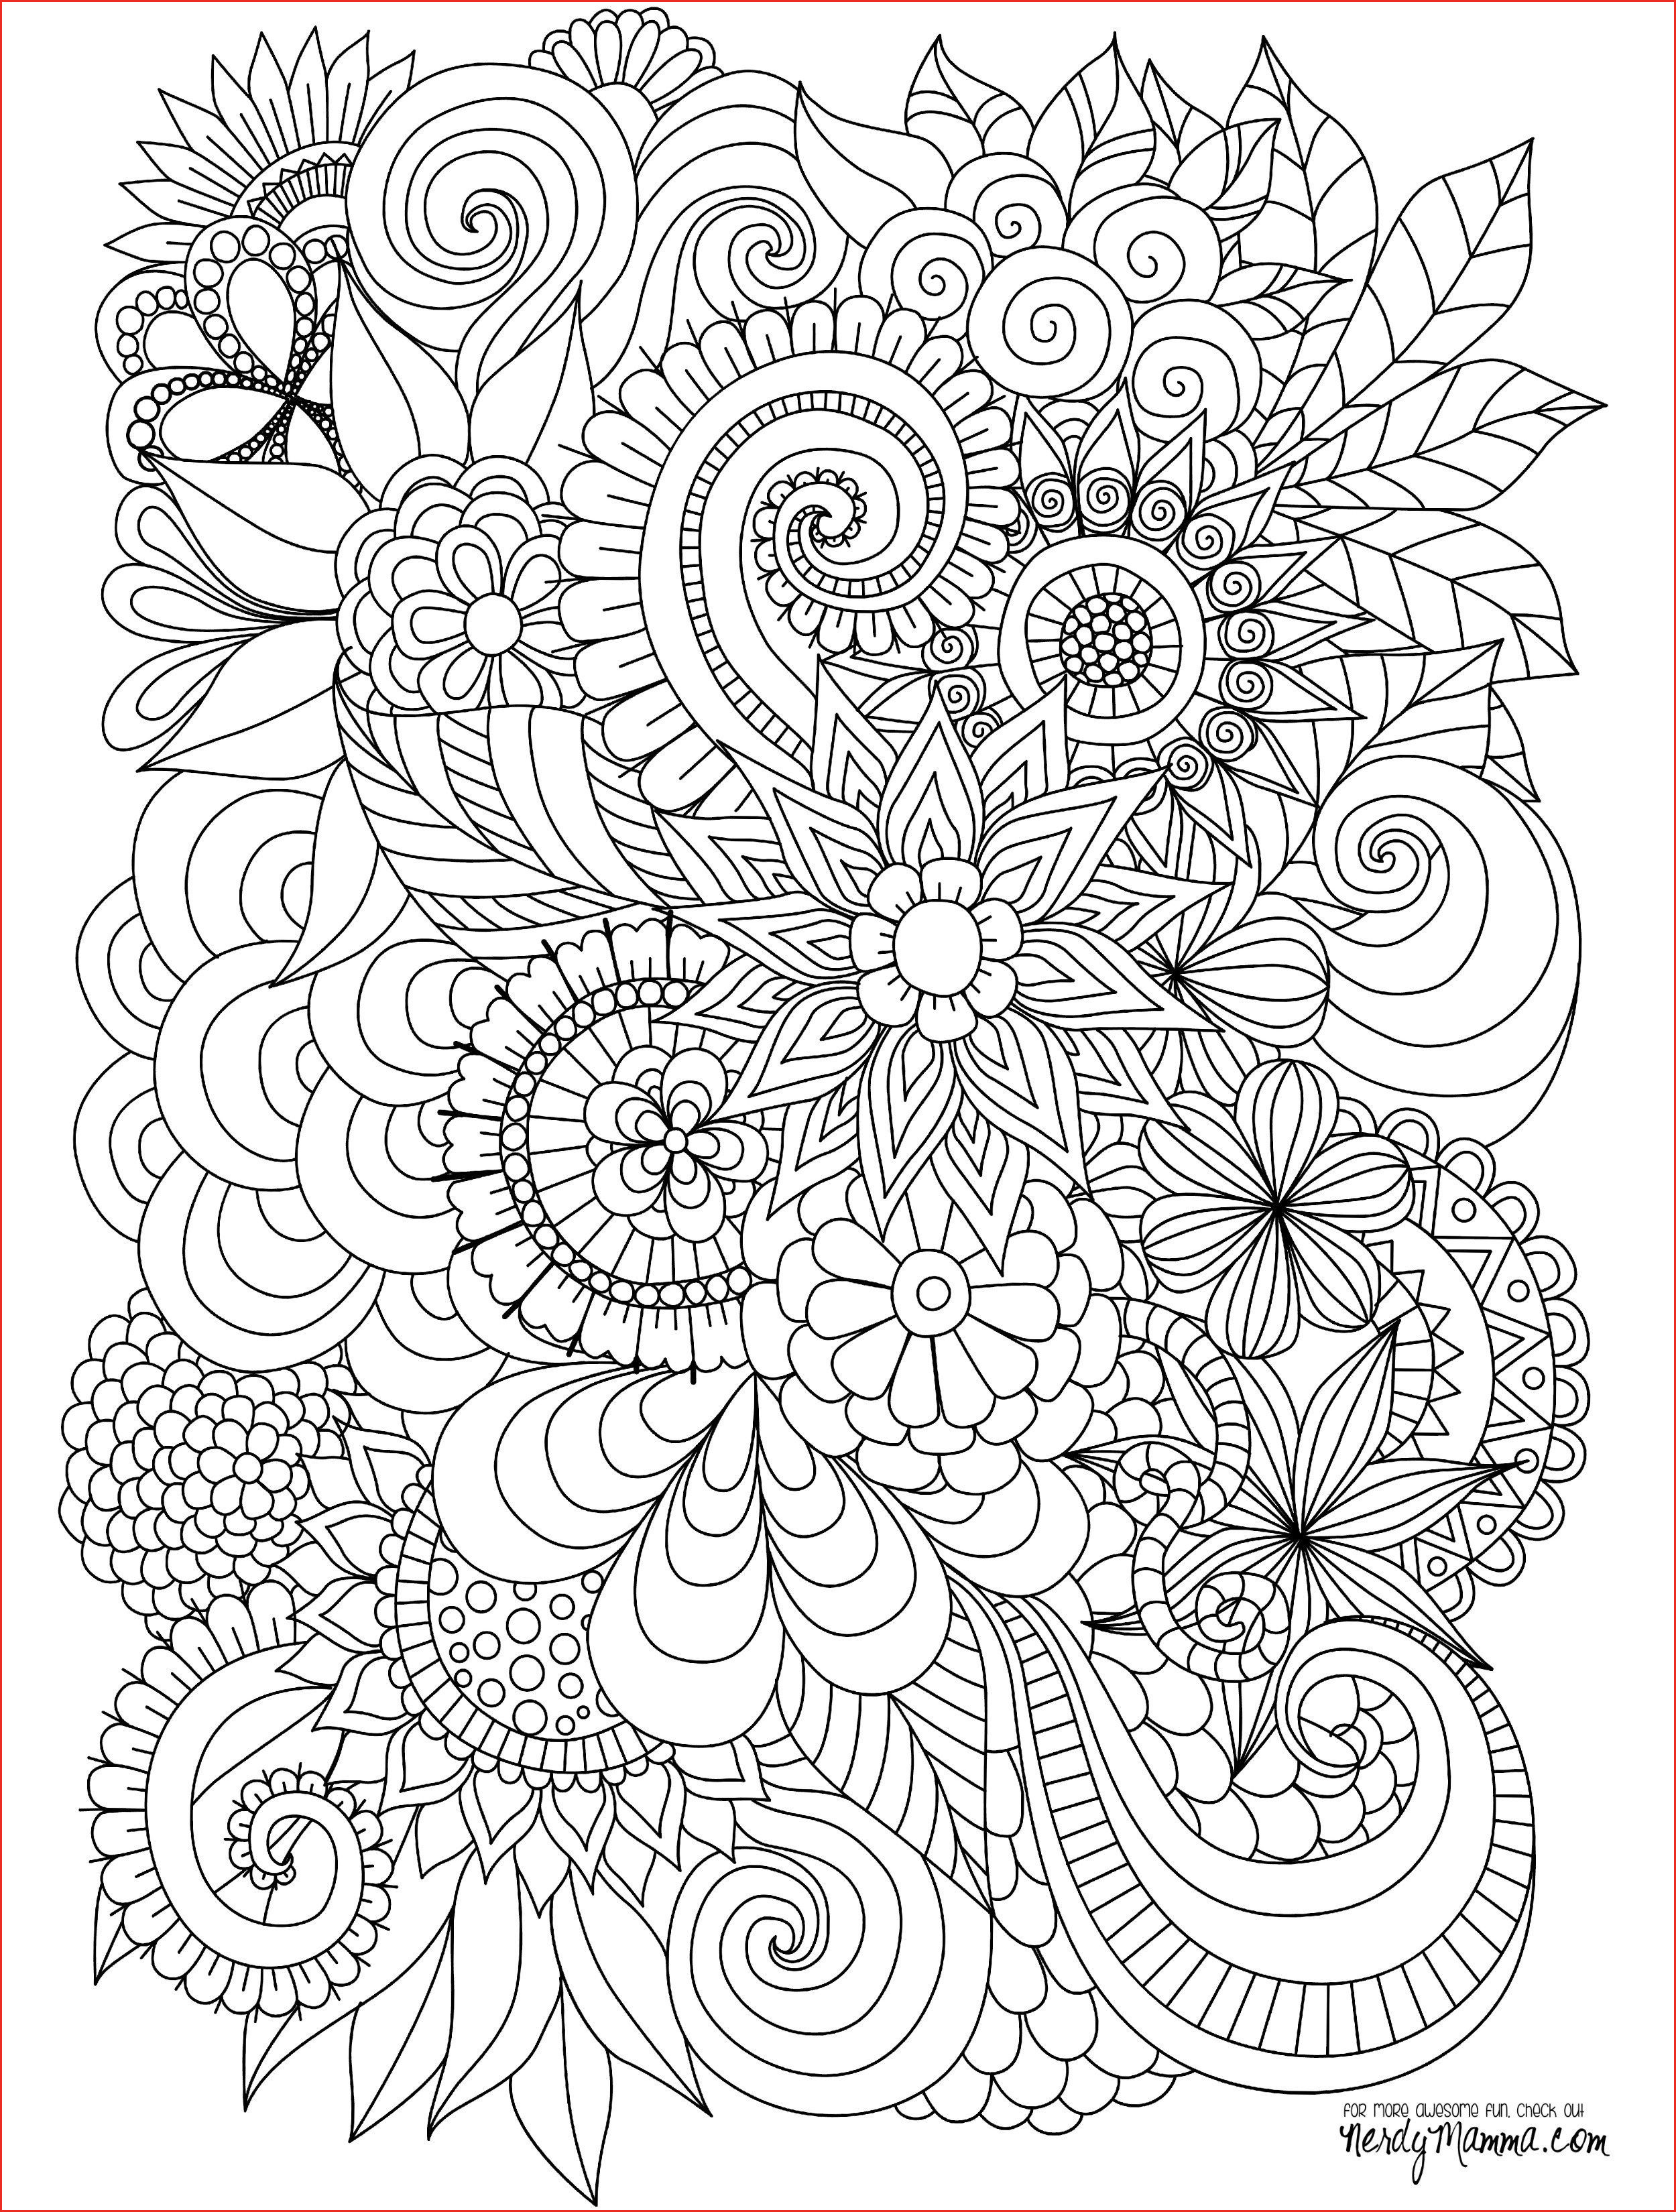 Free Printable Coloring Pages Adults Only Free Printable Coloring Pages Adults Only 55423 Flowers Abstract